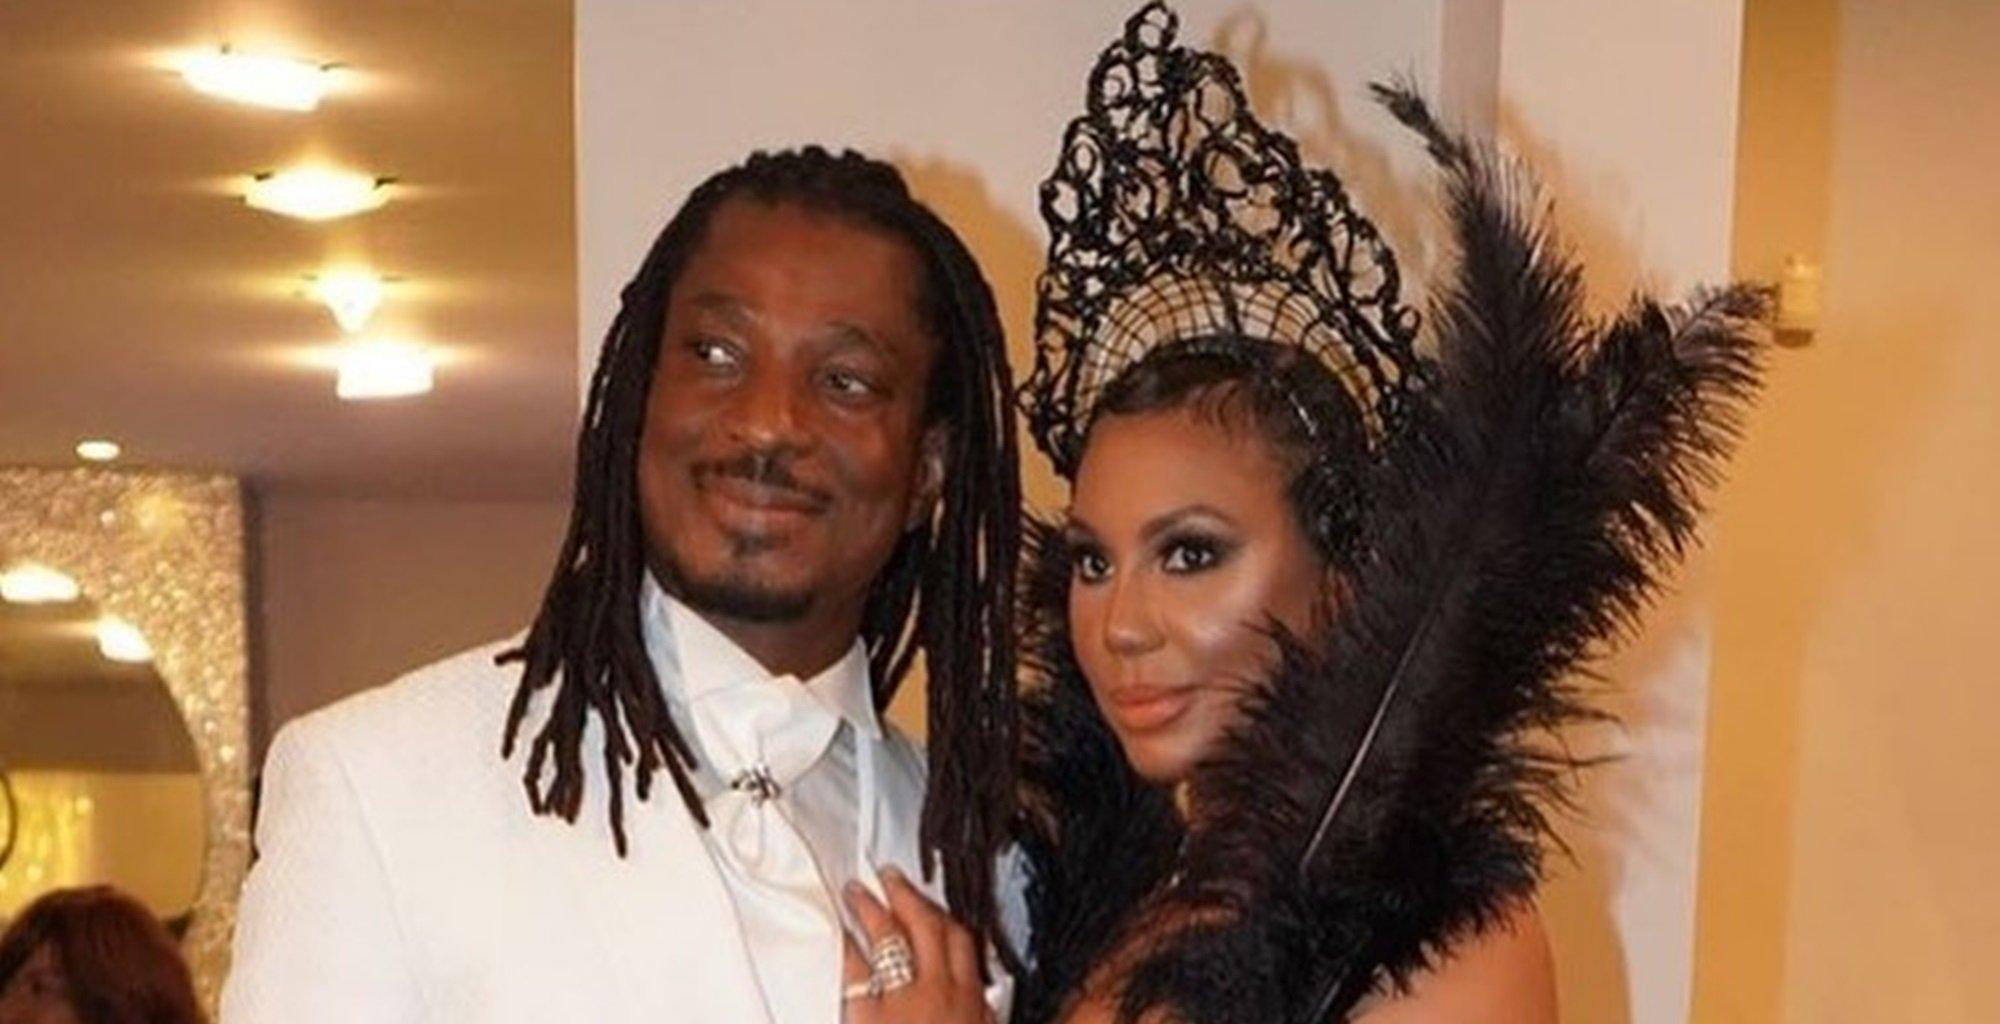 Tamar Braxton's BF, David Adefeso, Reveals His Plan To Help Kids In Nigeria - See The Video